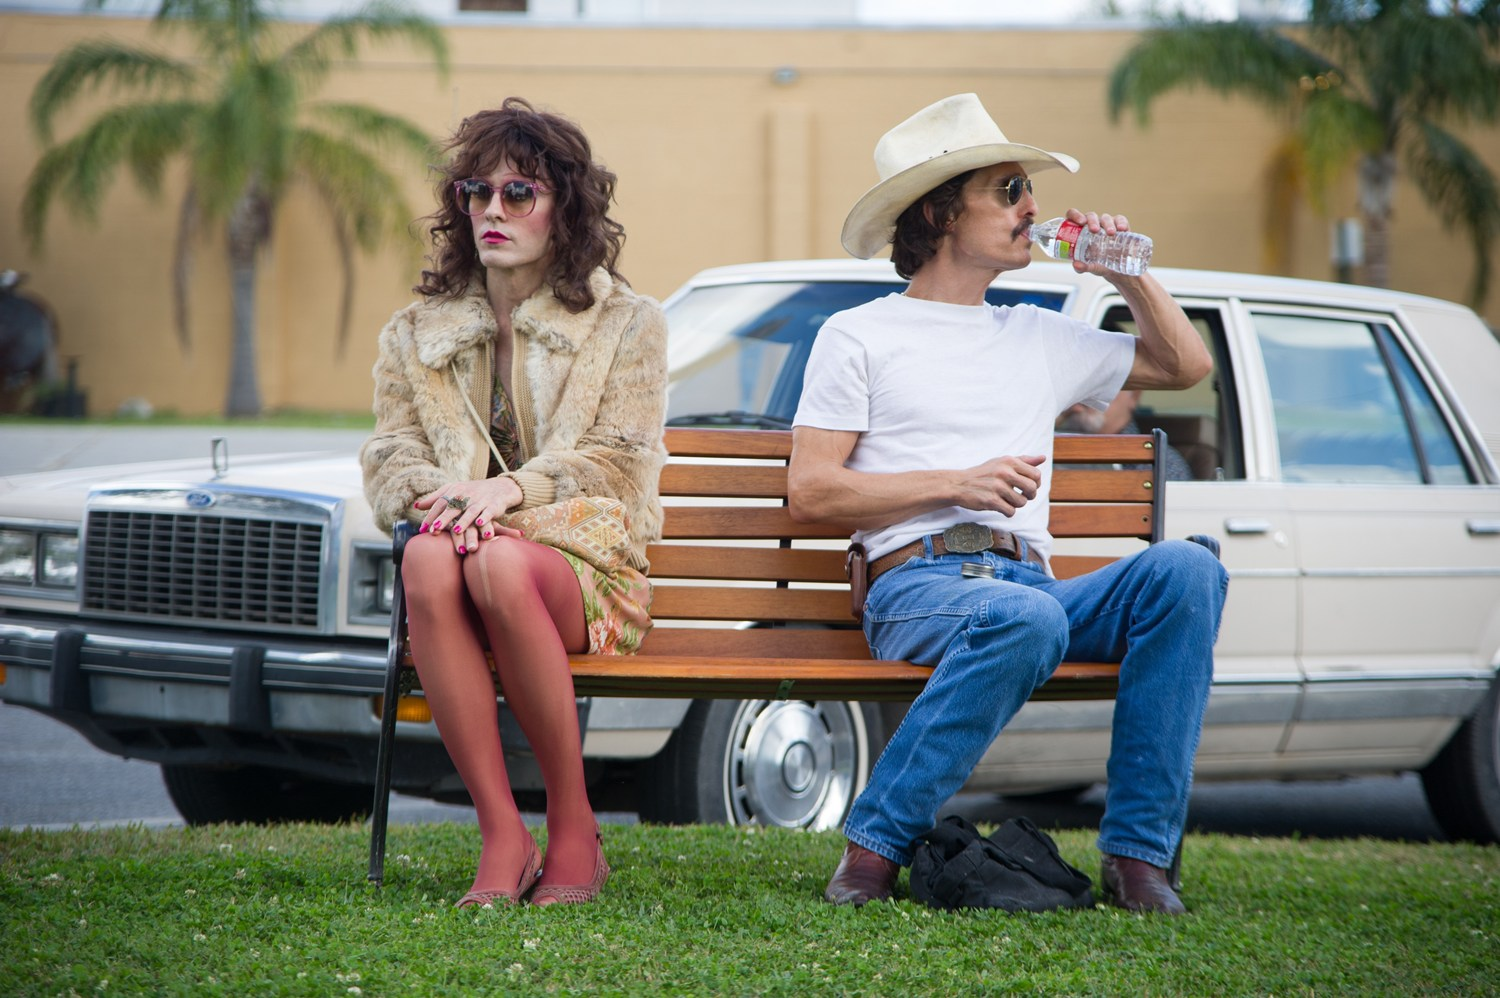 dallas buyers club de los desahuciados matthew mcconaughey jared letto